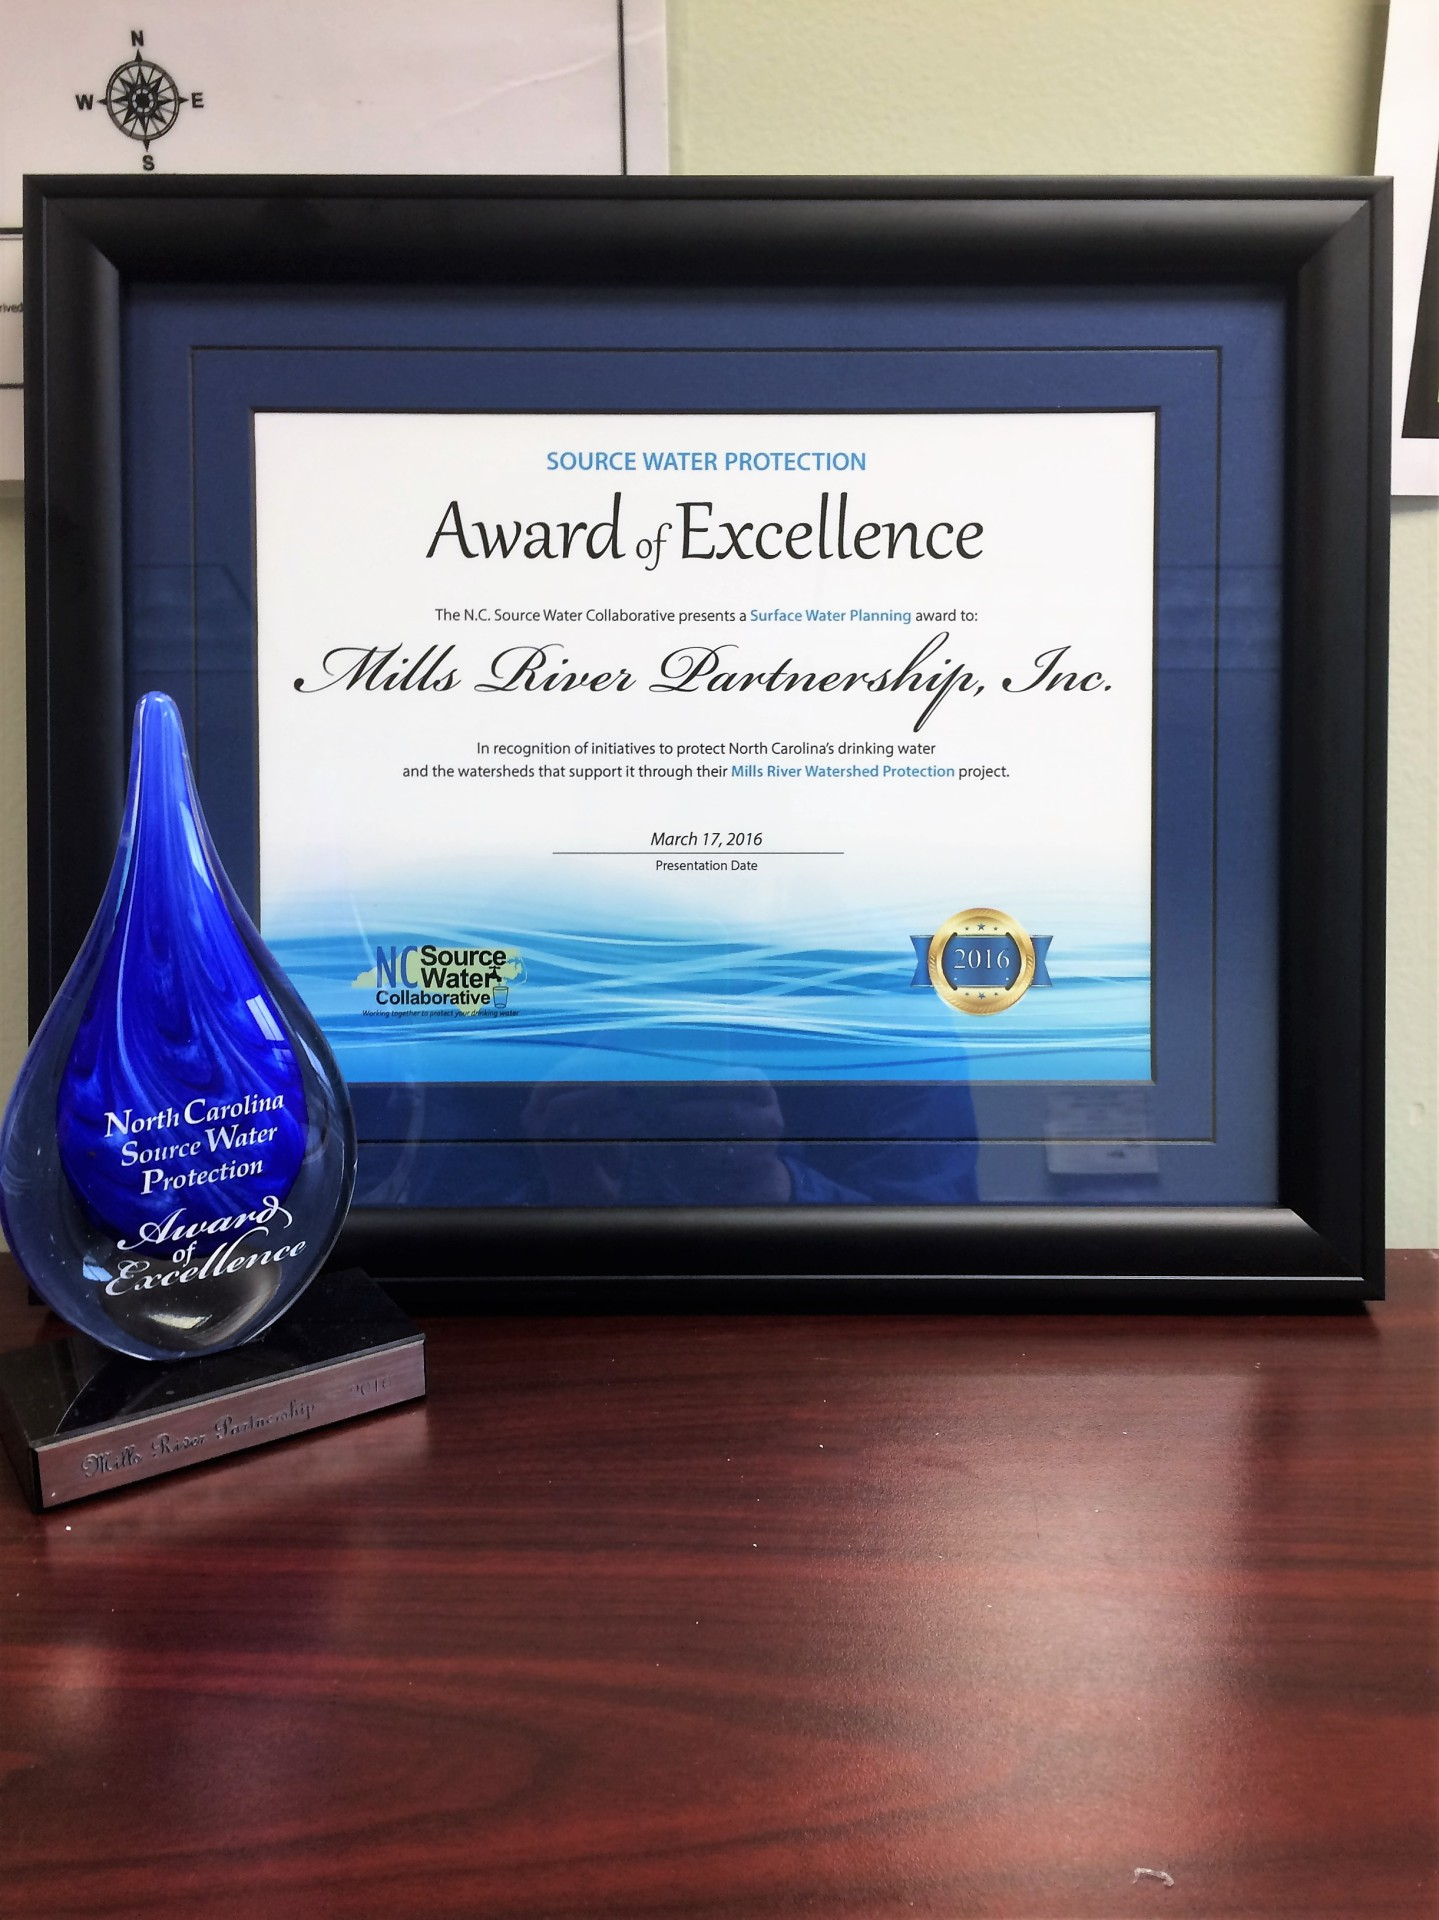 Award of Excellence for Mills River Partnership